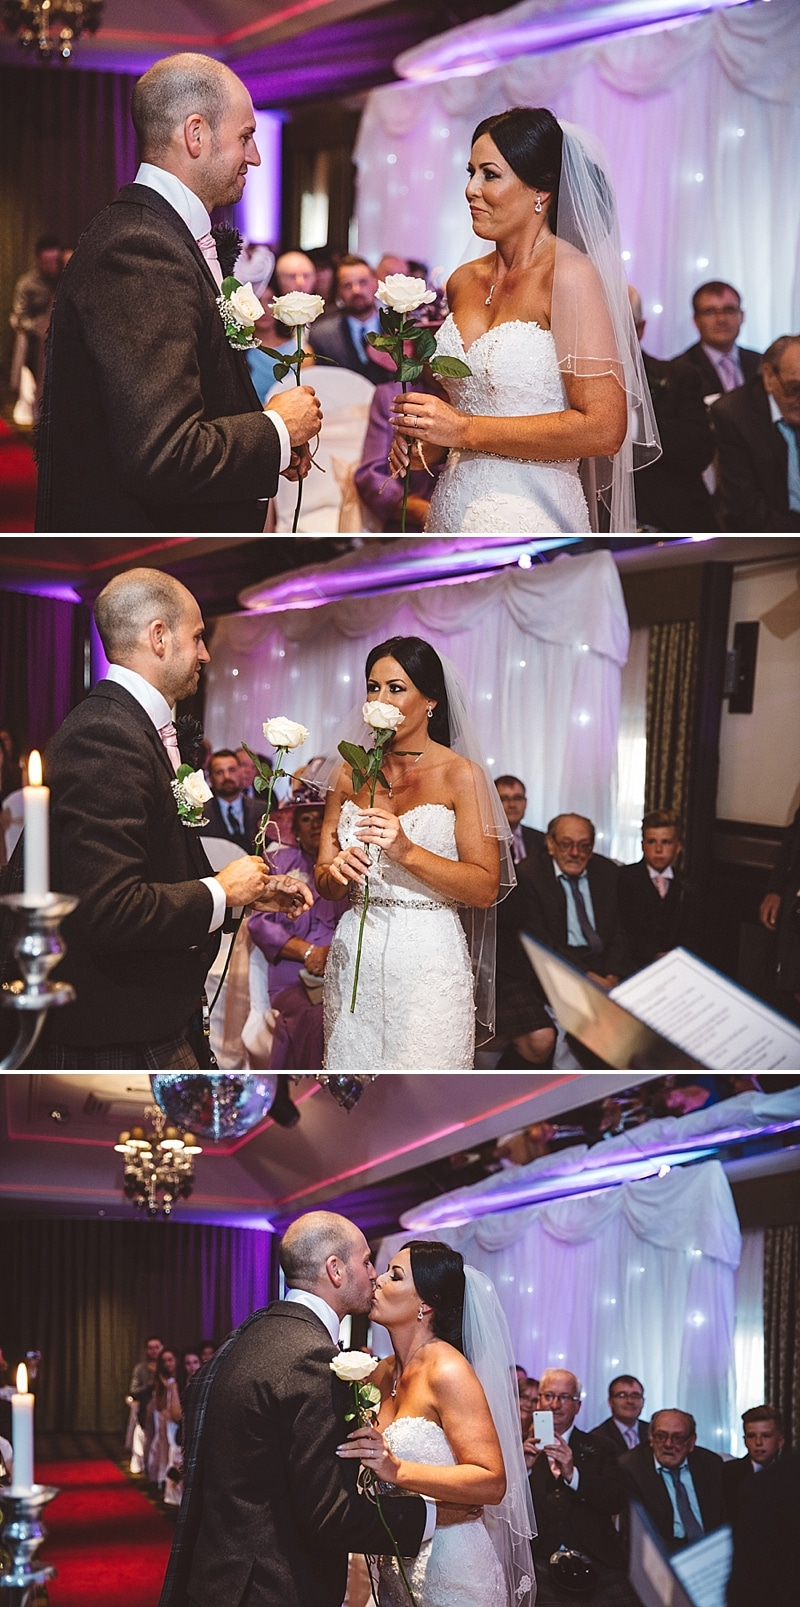 Lynne_Jamie_Torrence_Hotel_Glasgow_Wedding_Photos-4116.jpg